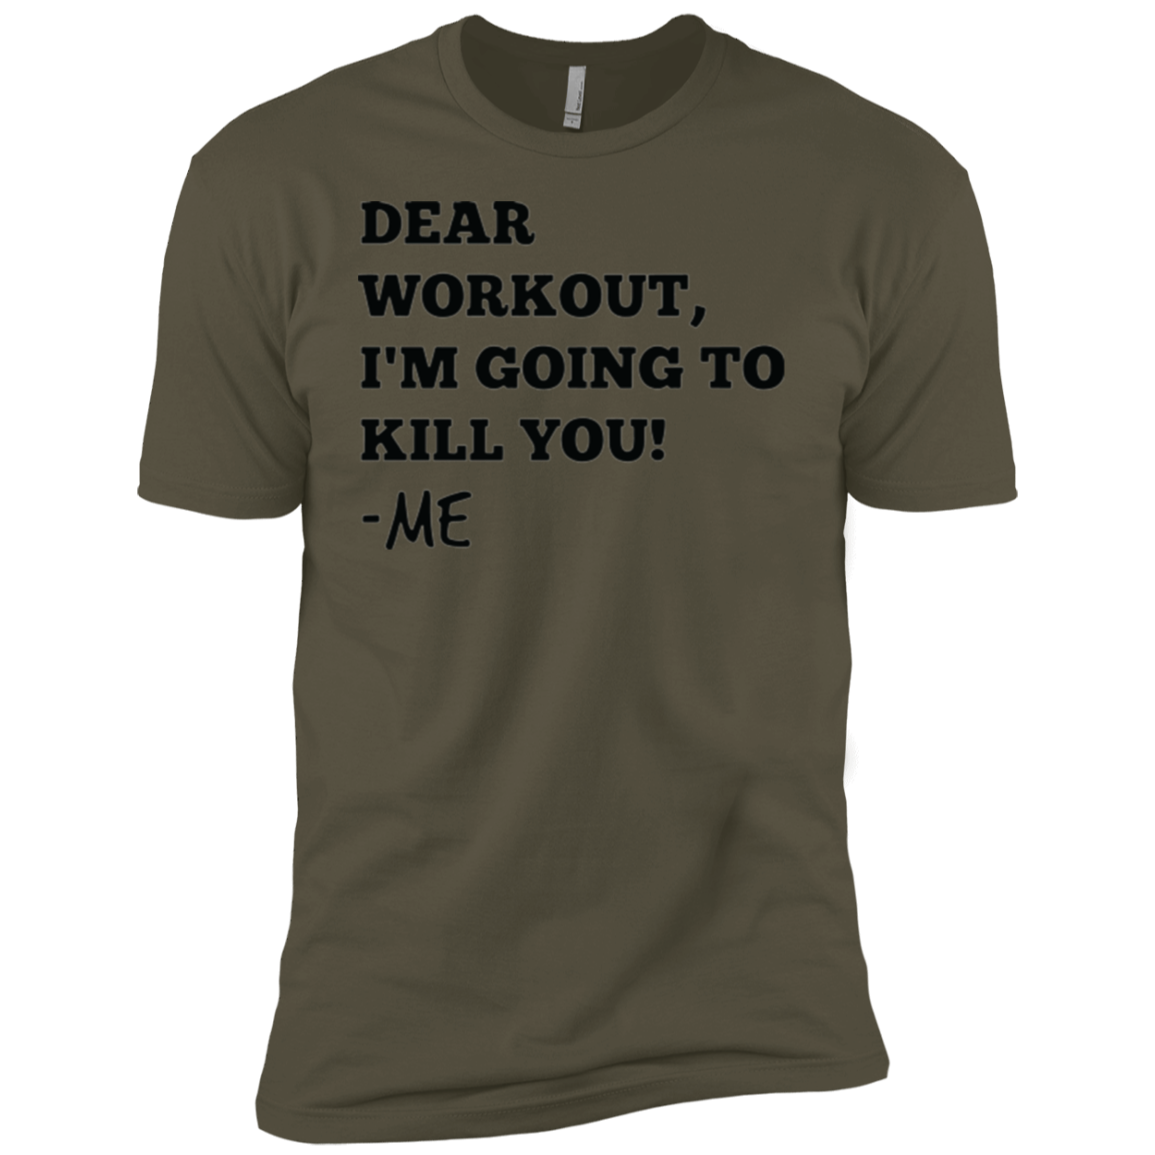 Dear Workout I'm Going to Kill You Men's Classic Tee - Trendy Tees